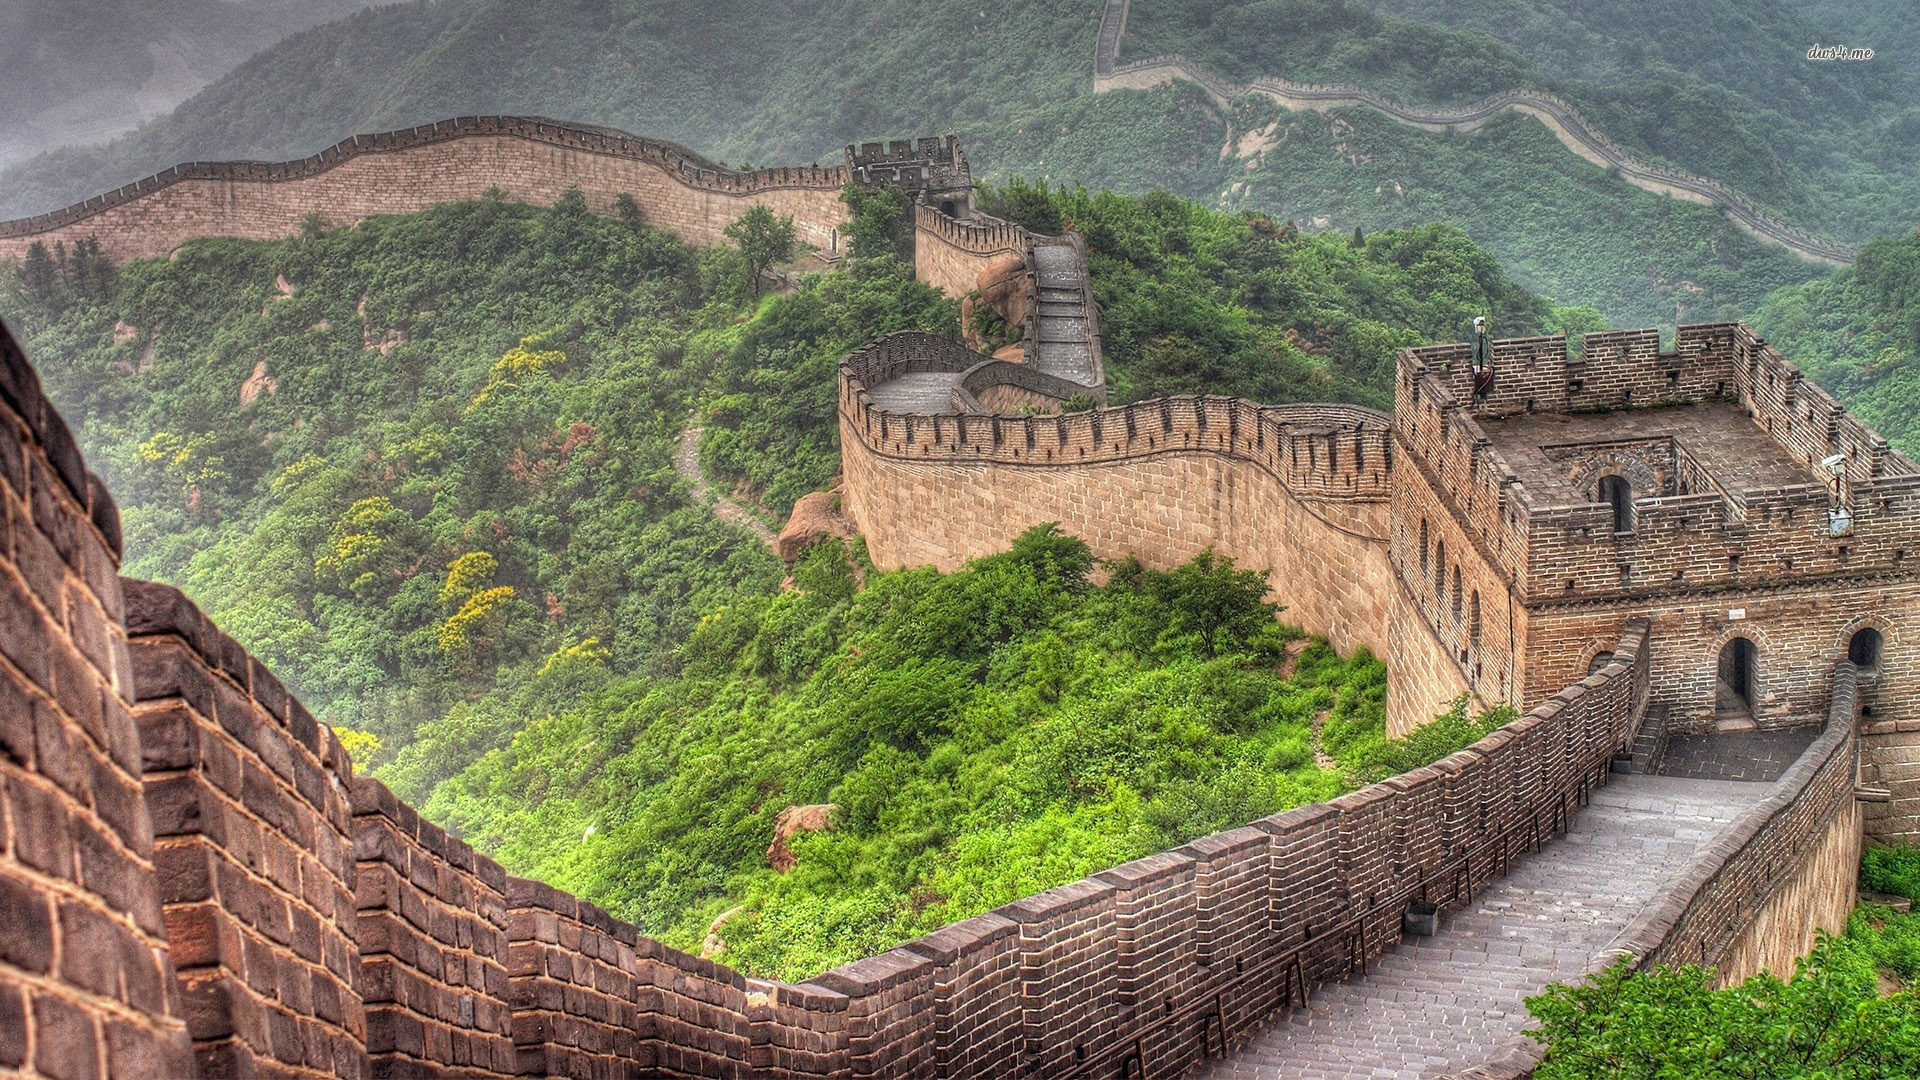 great wall of china hd wallpapers - travel hd wallpapers